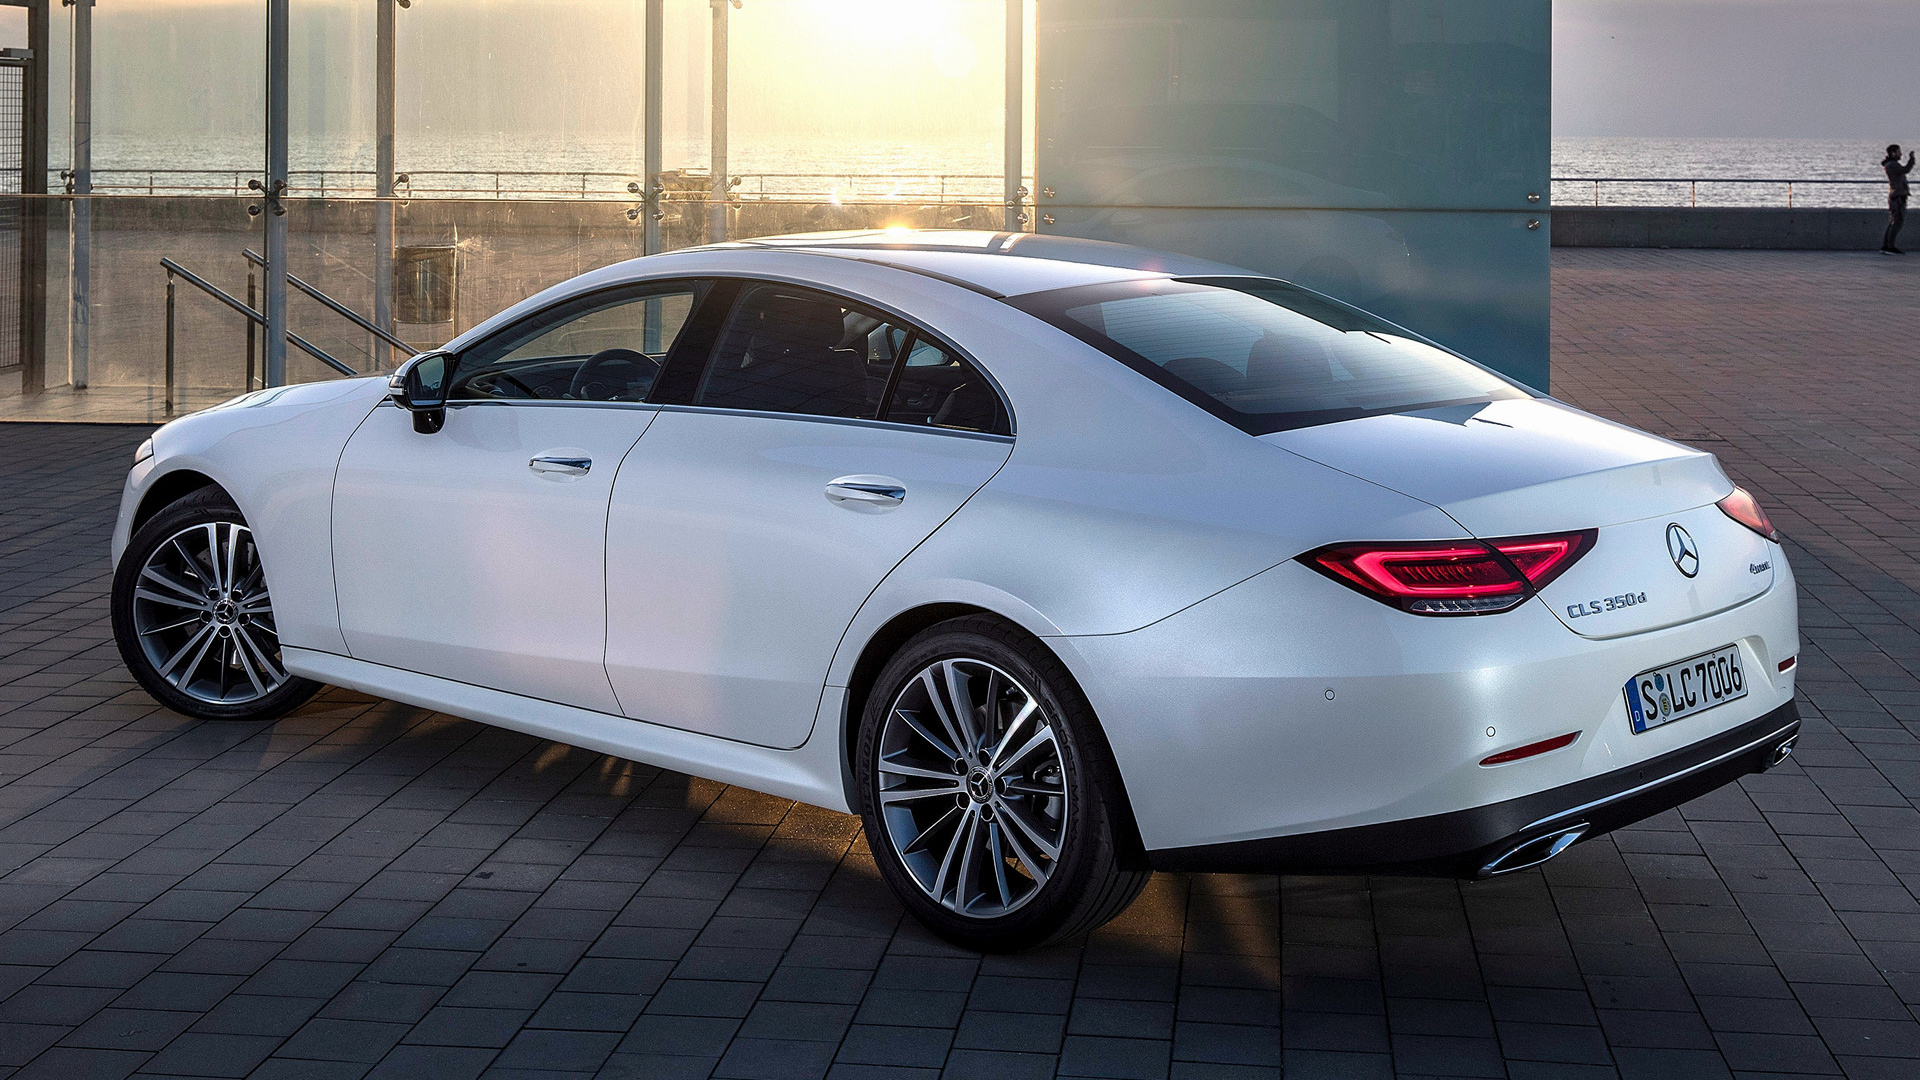 2018 Mercedes-Benz CLS-Class - Wallpapers and HD Images ...